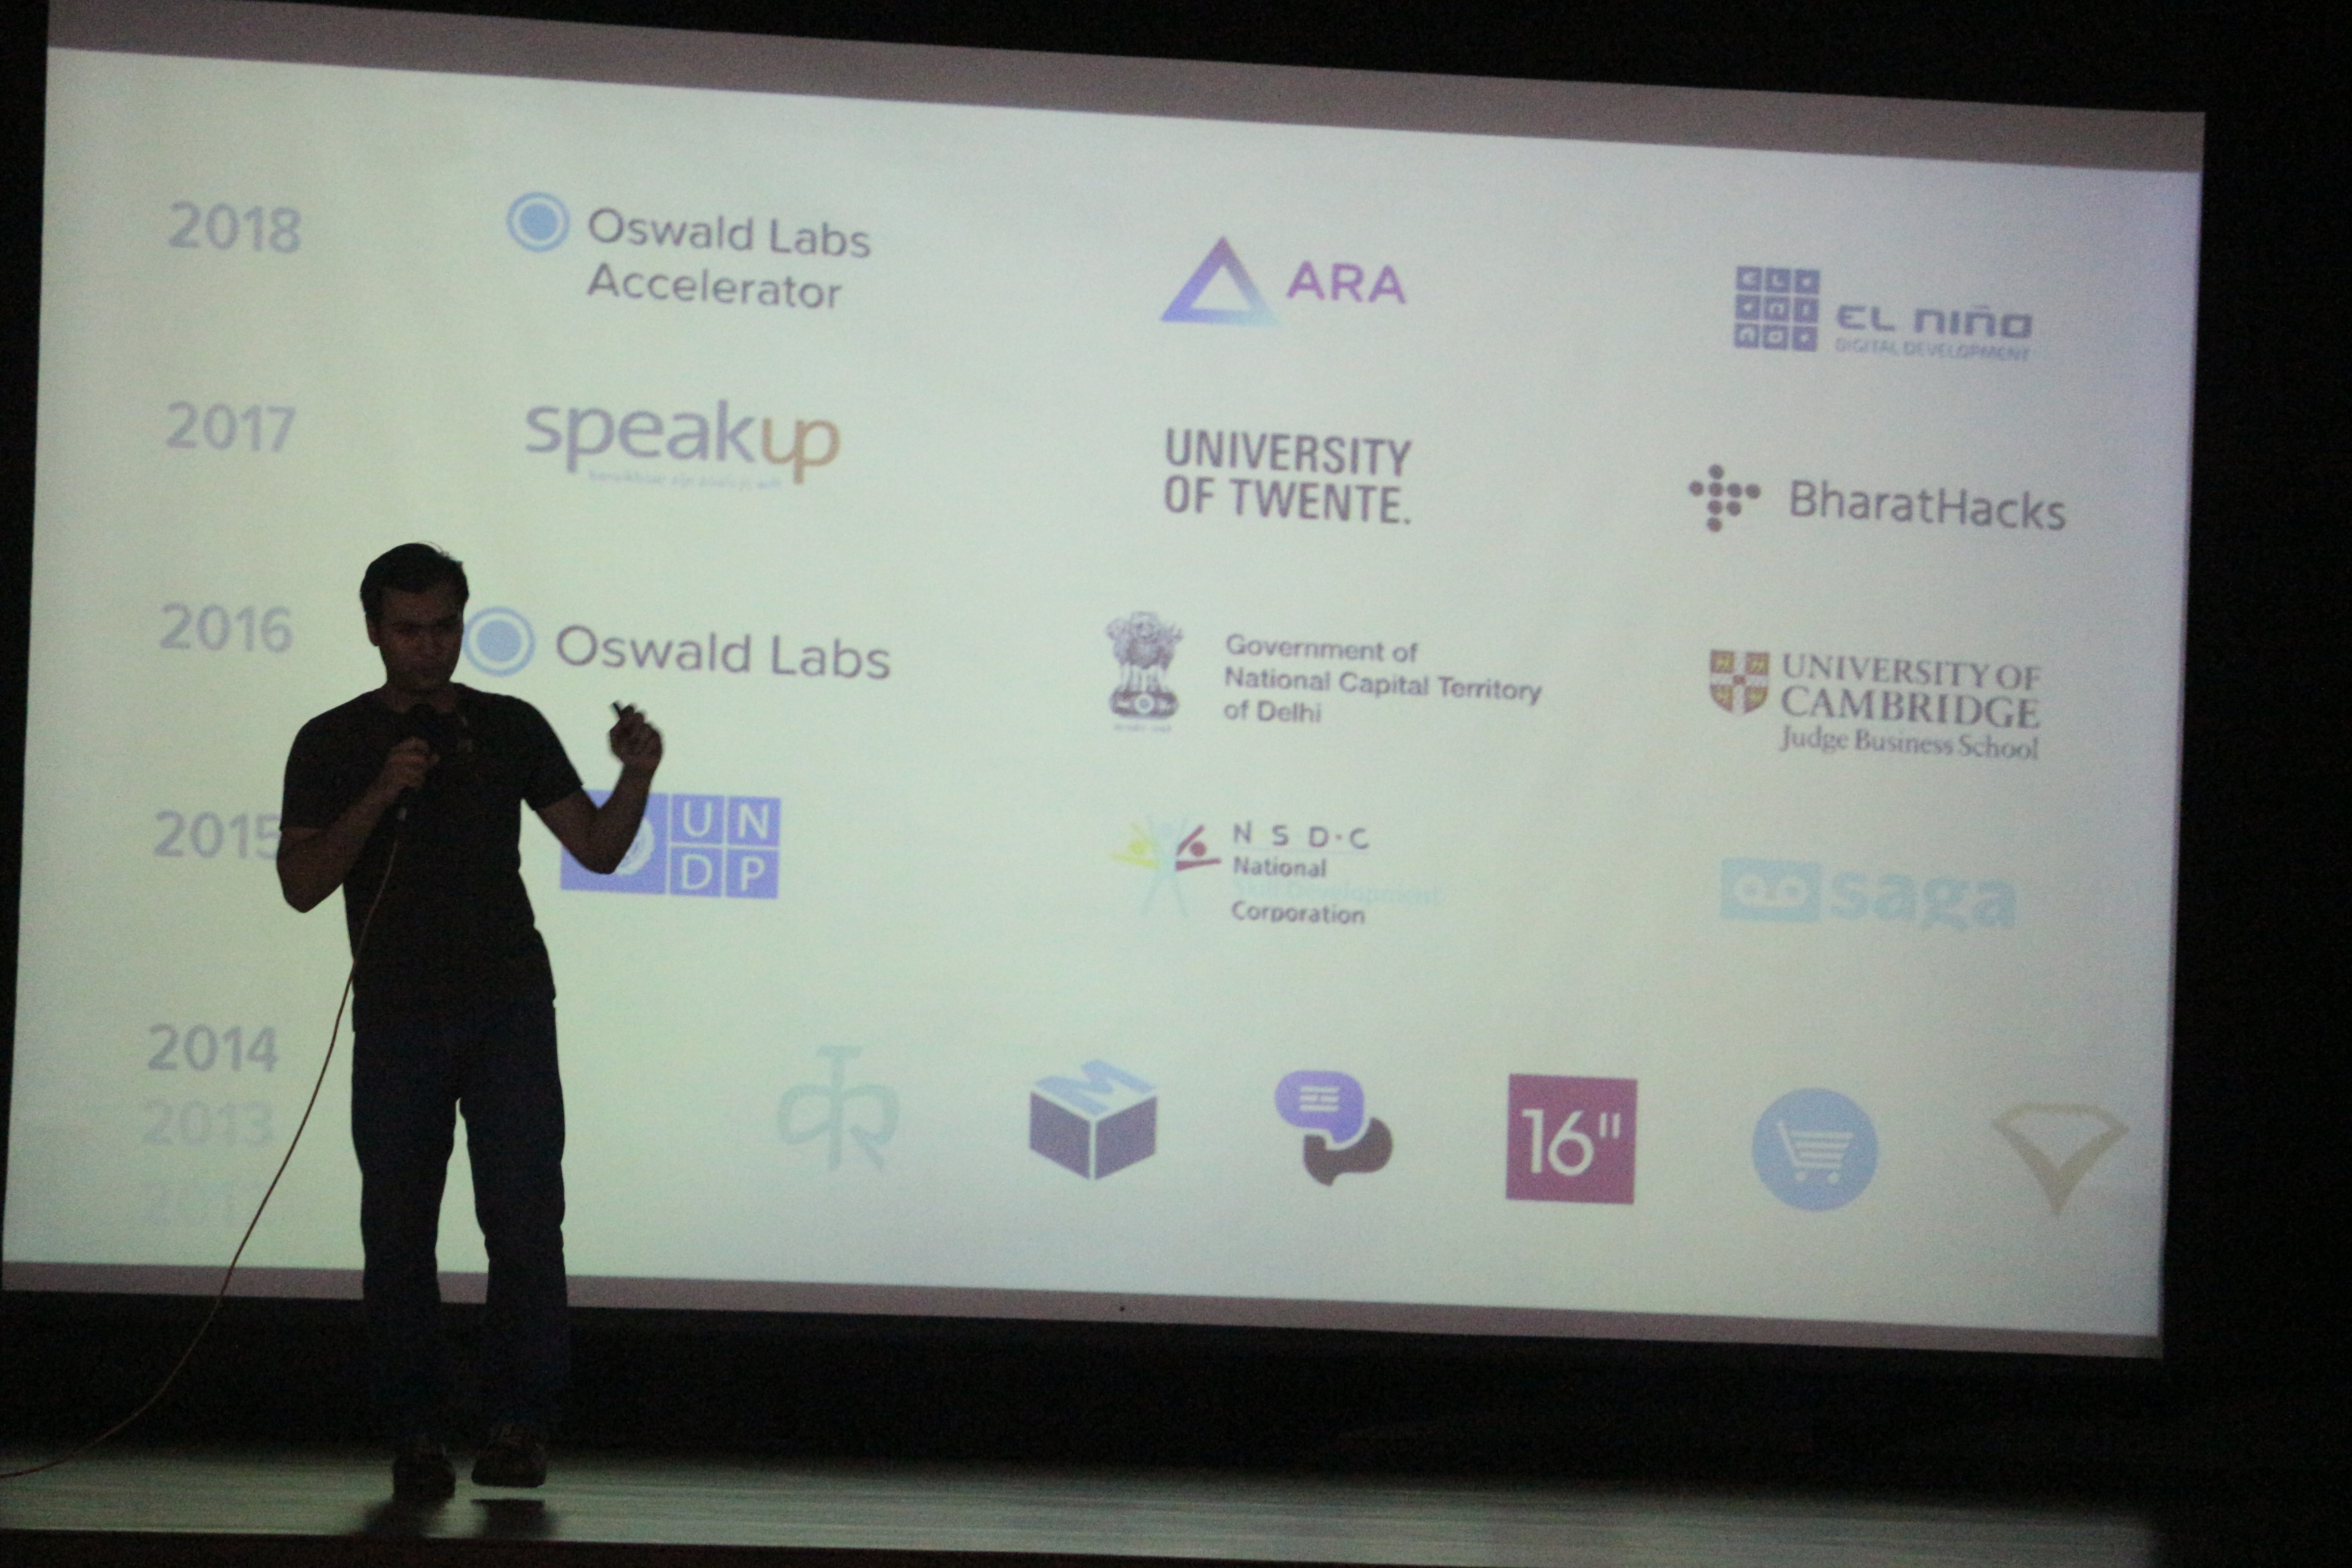 Anand Chowdhary speaking behind a set of logos